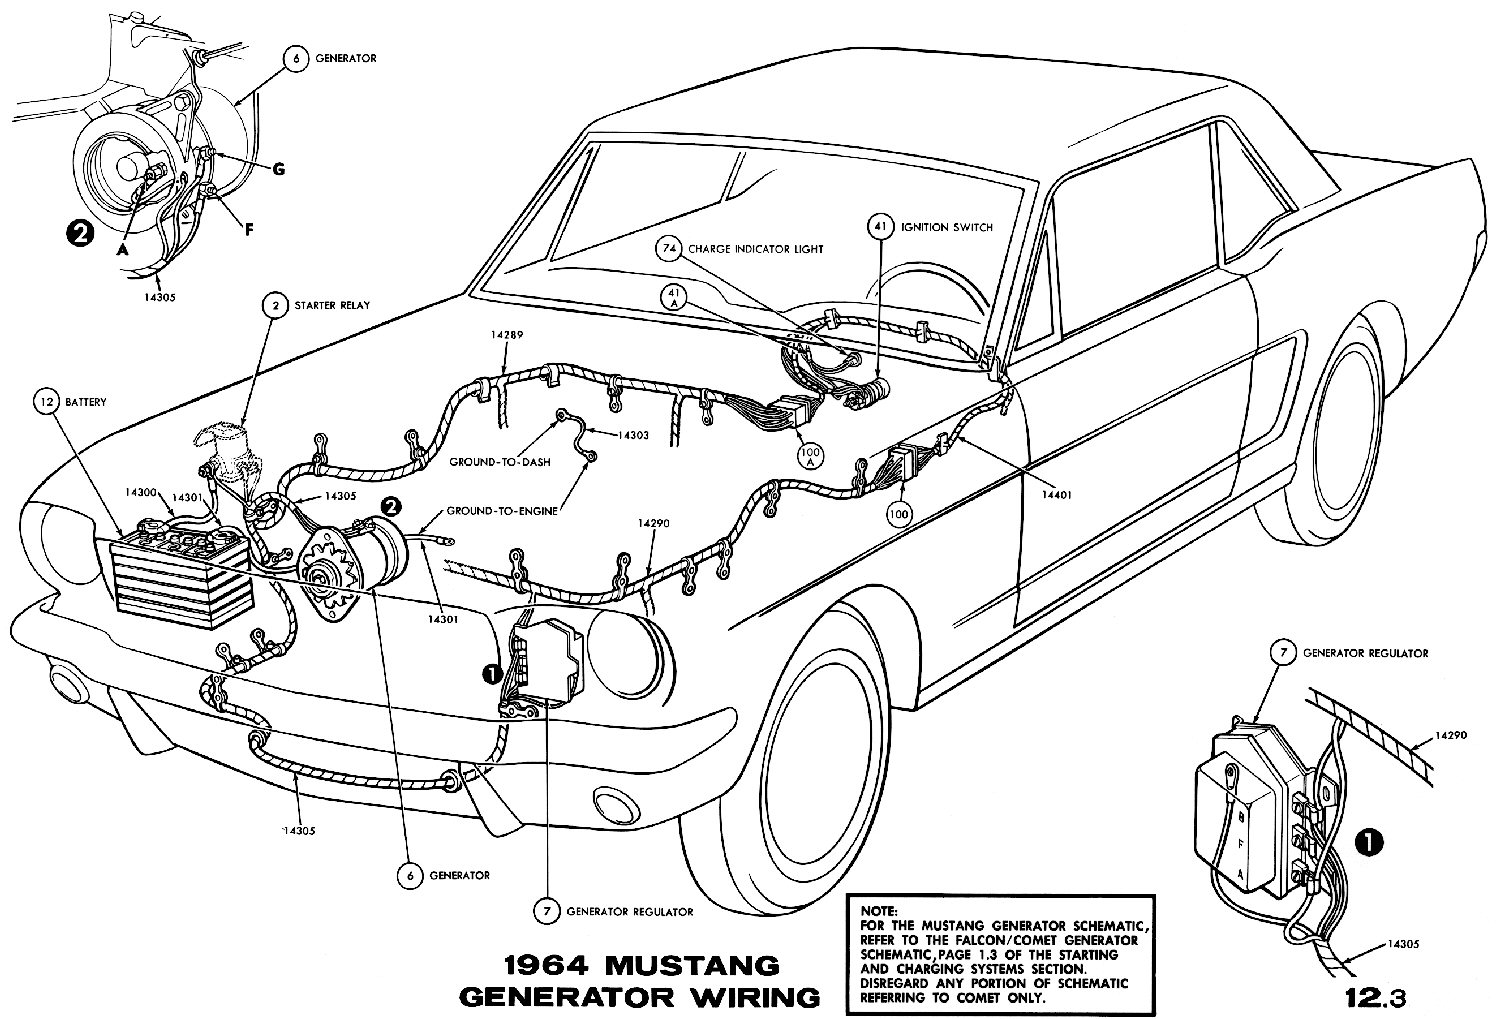 1964 Mustang Wiring Diagrams Average Joe Restoration 71 Regulator Diagram Sm1964f Generator Pictorial Or Schematic